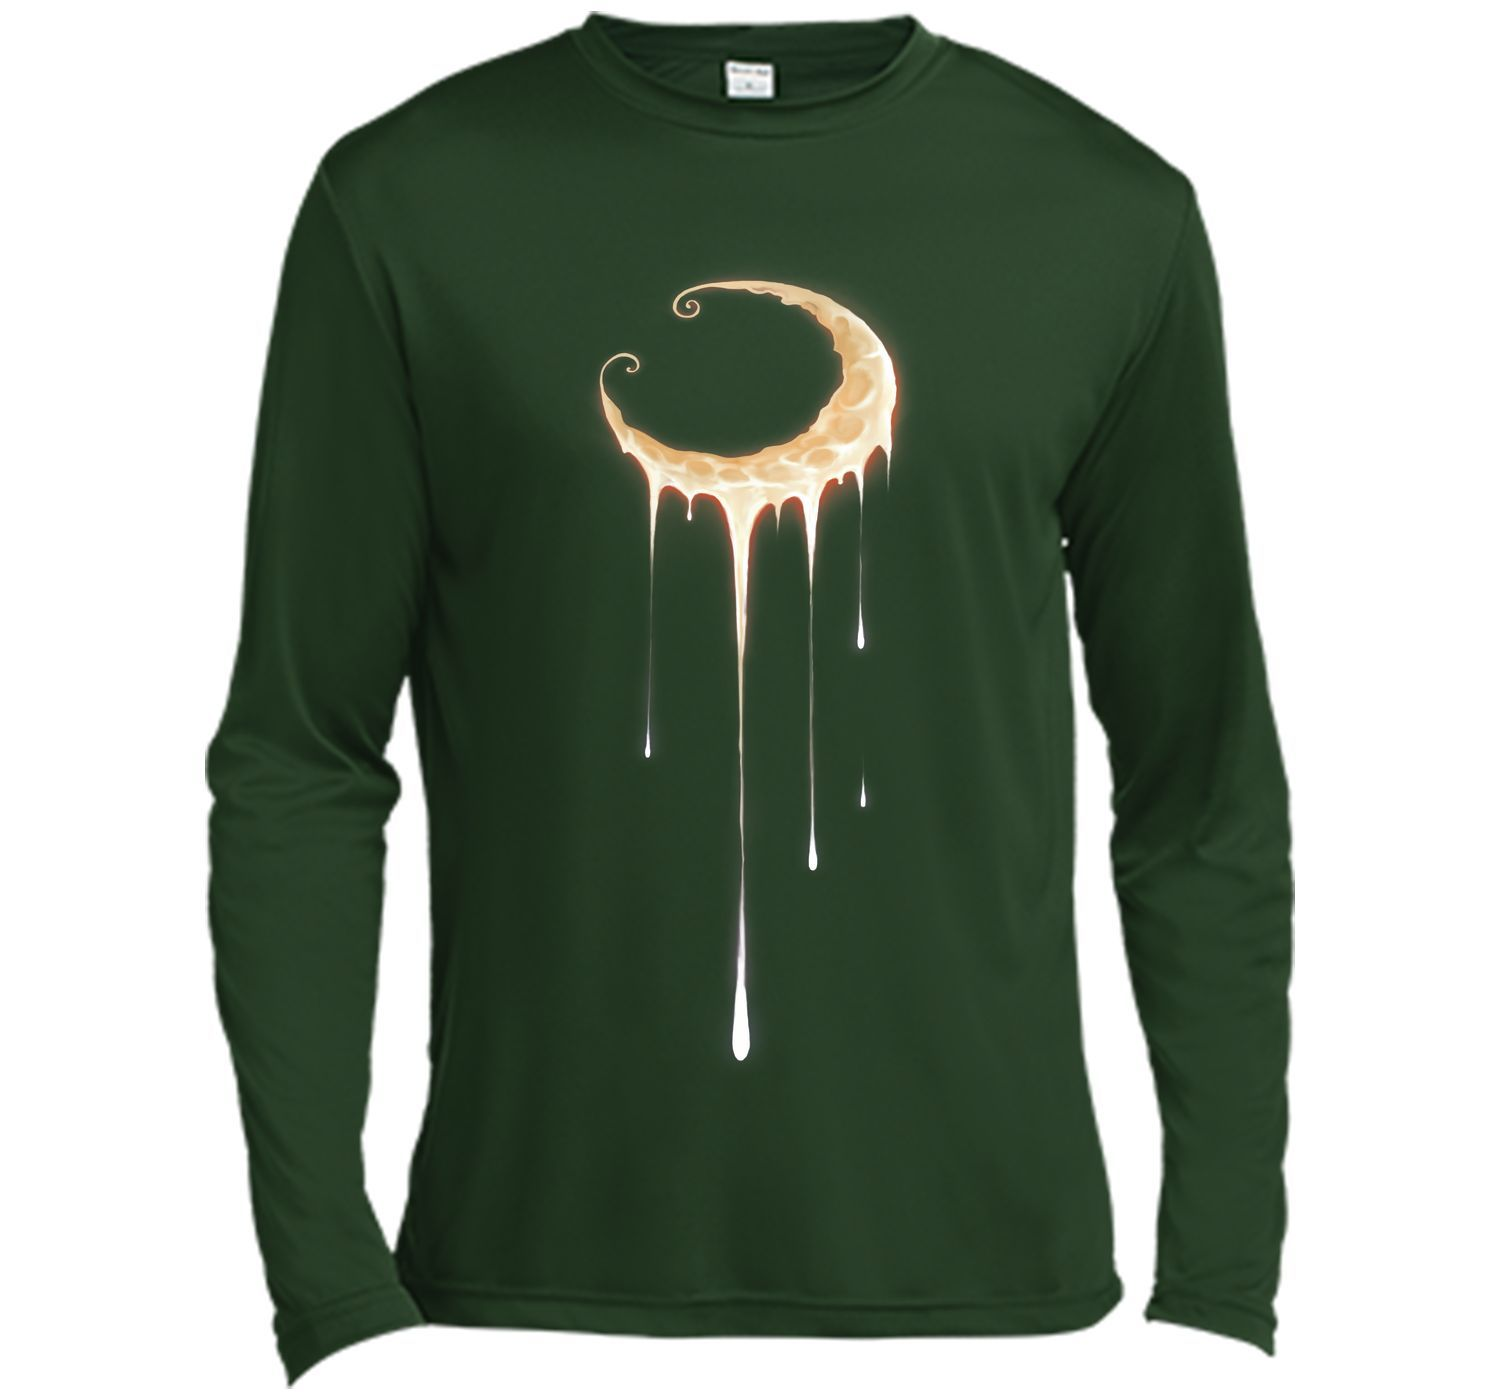 Attractive Melting Moon Rpg Download 2017 T Shirt